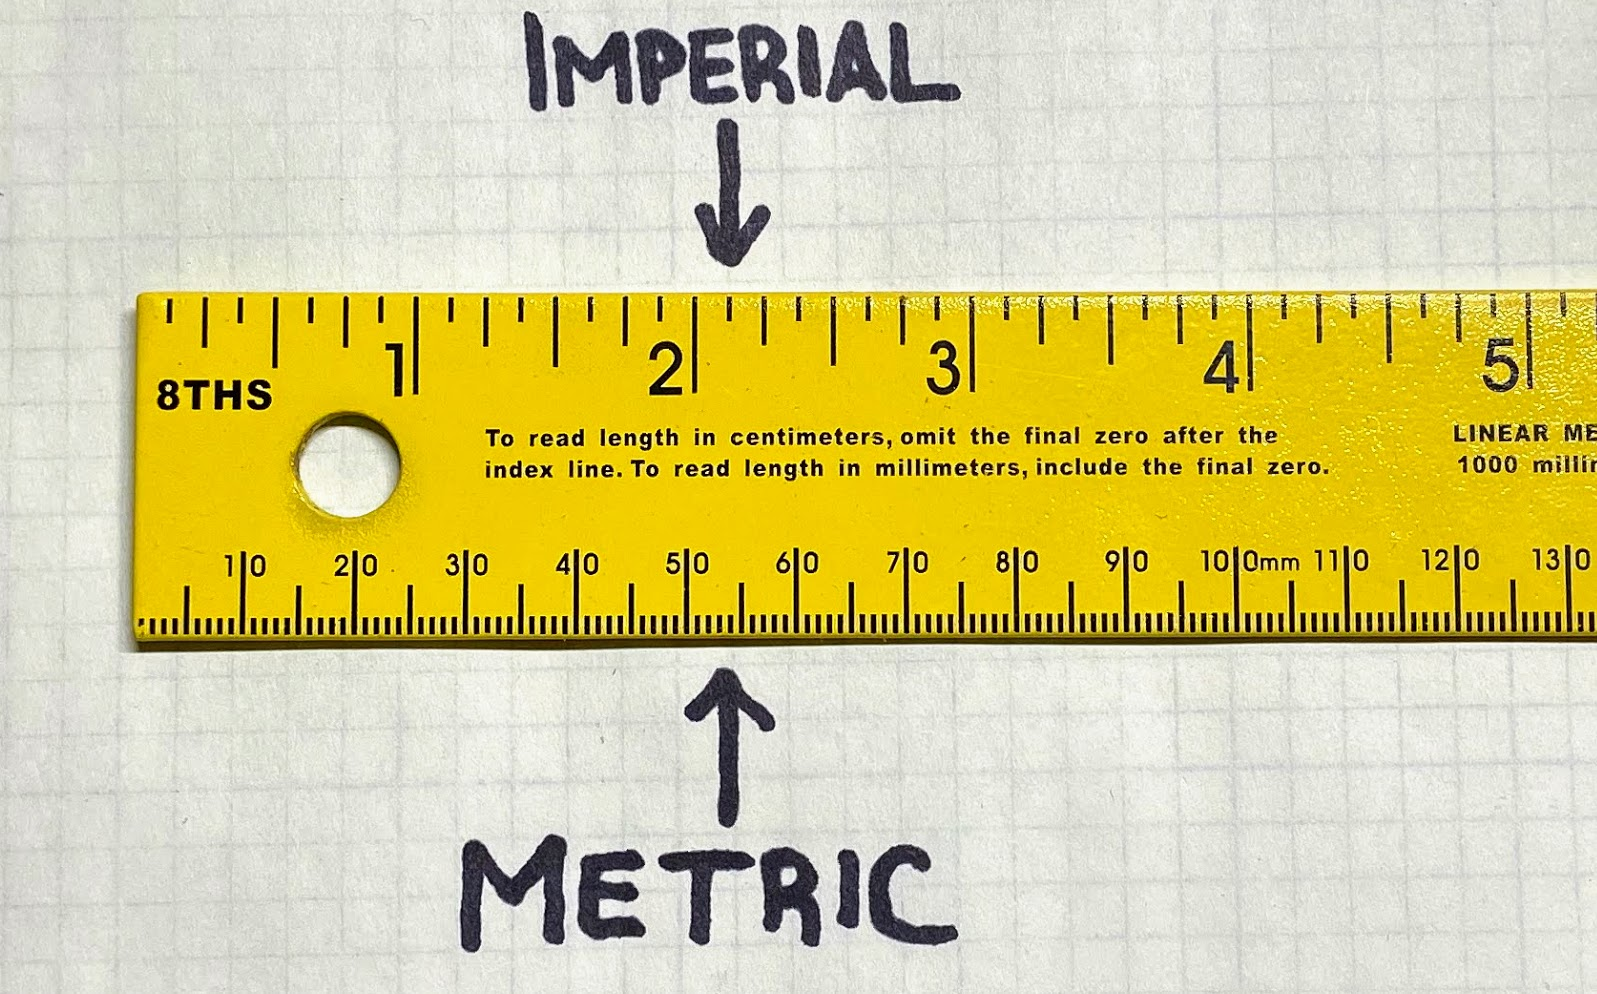 Imperial and Metric